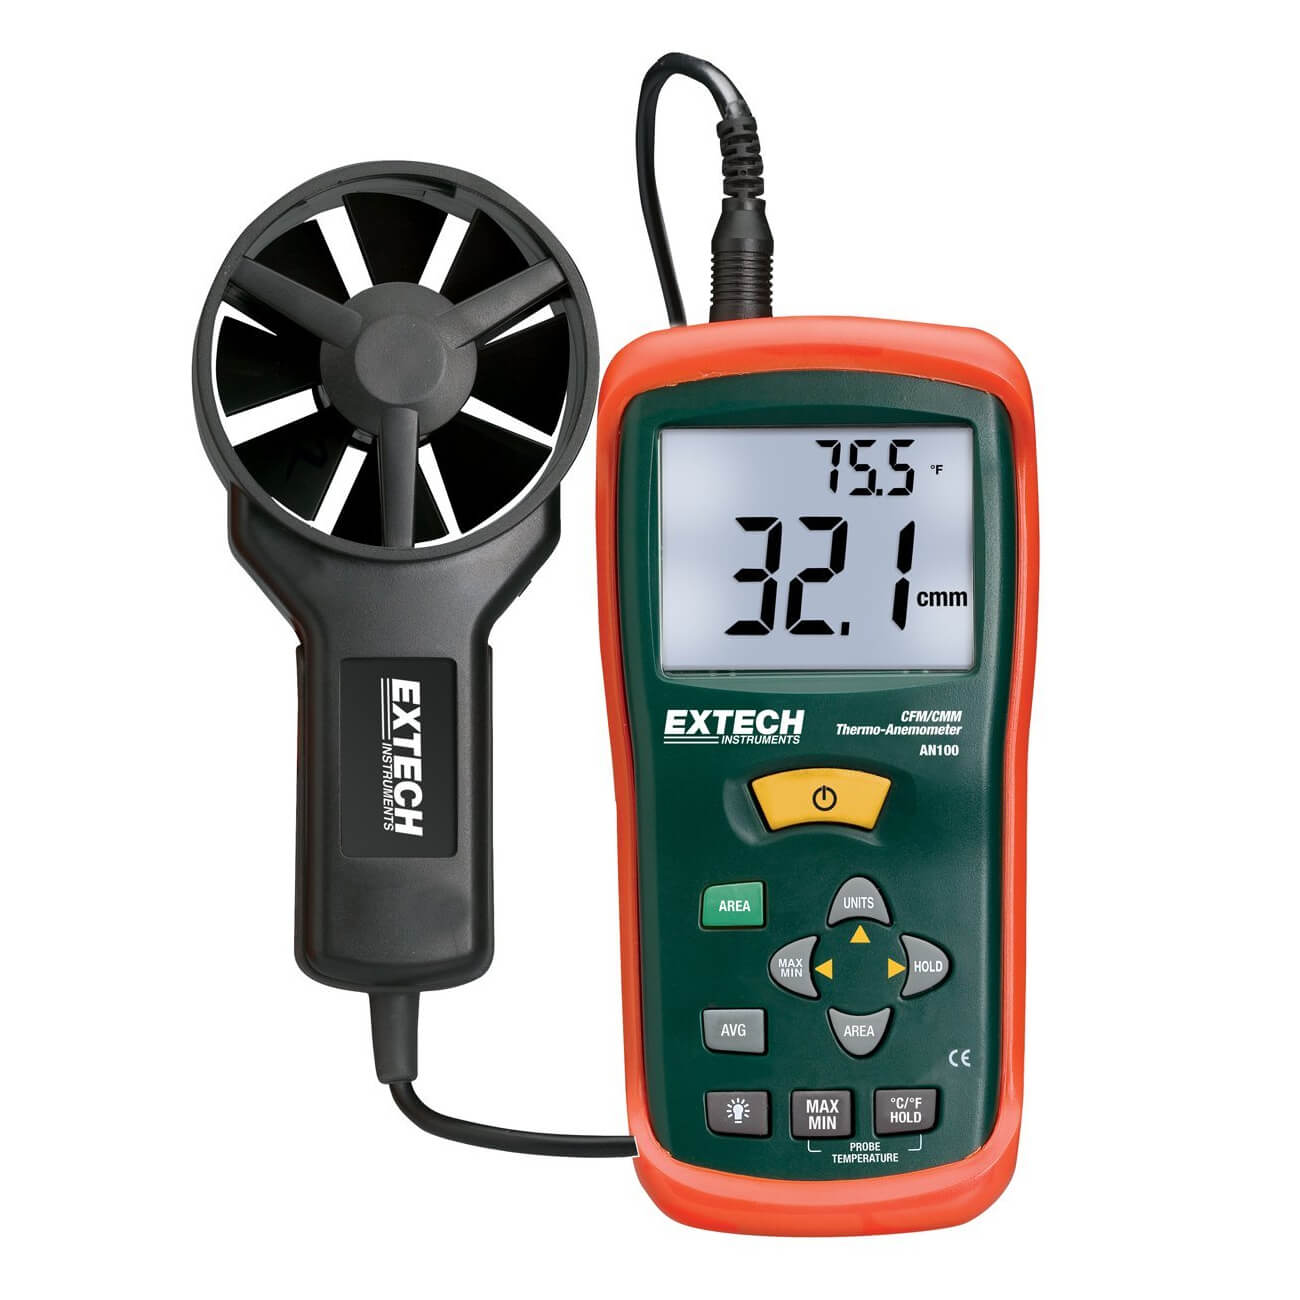 Extech AN100 Digital CFM-CMM Thermo-Anemometer